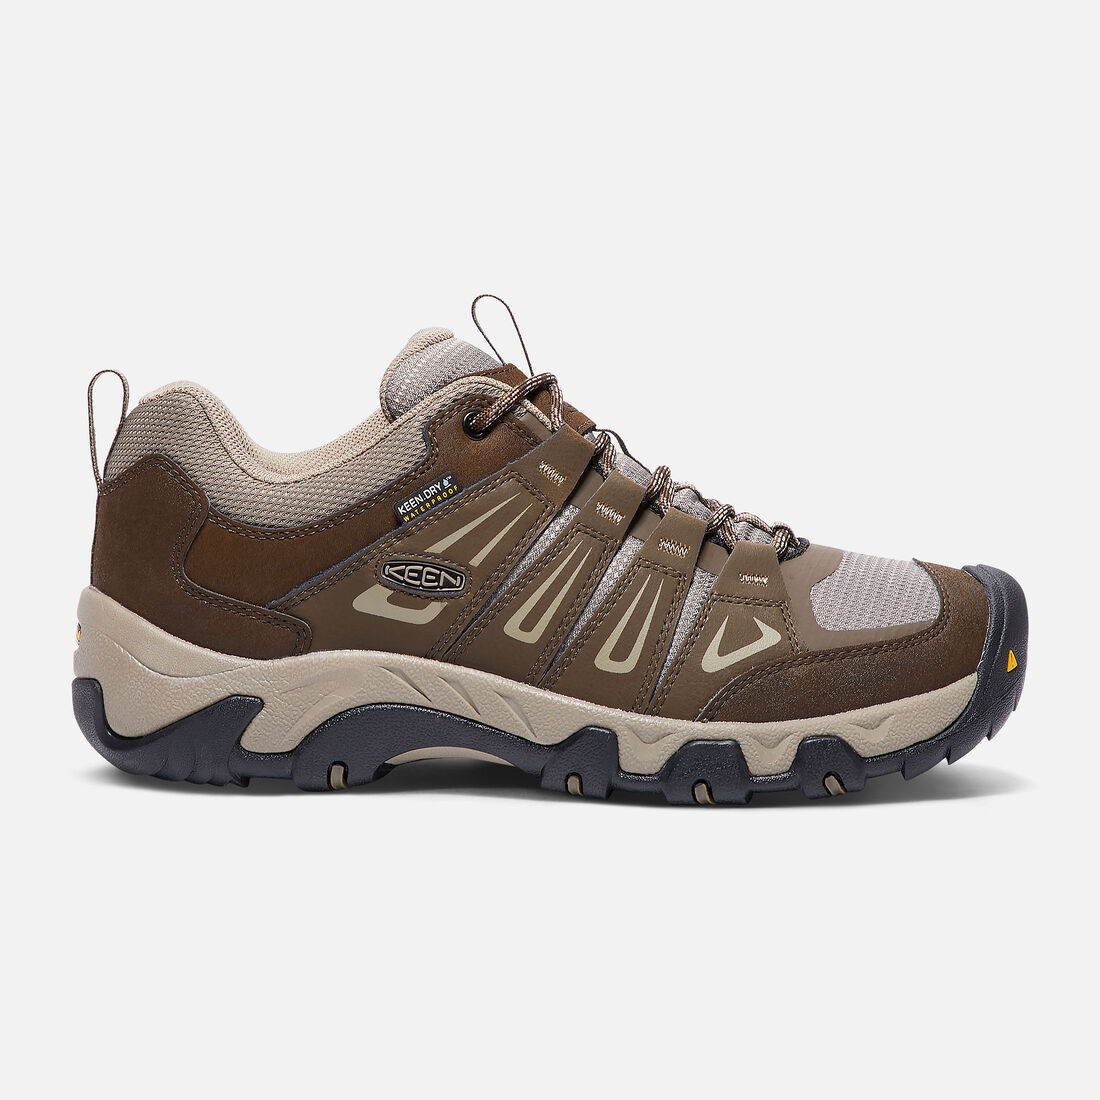 MEN'S OAKRIDGE WATERPROOF HIKING SHOES in Cascade Brown/Brindle - large view.